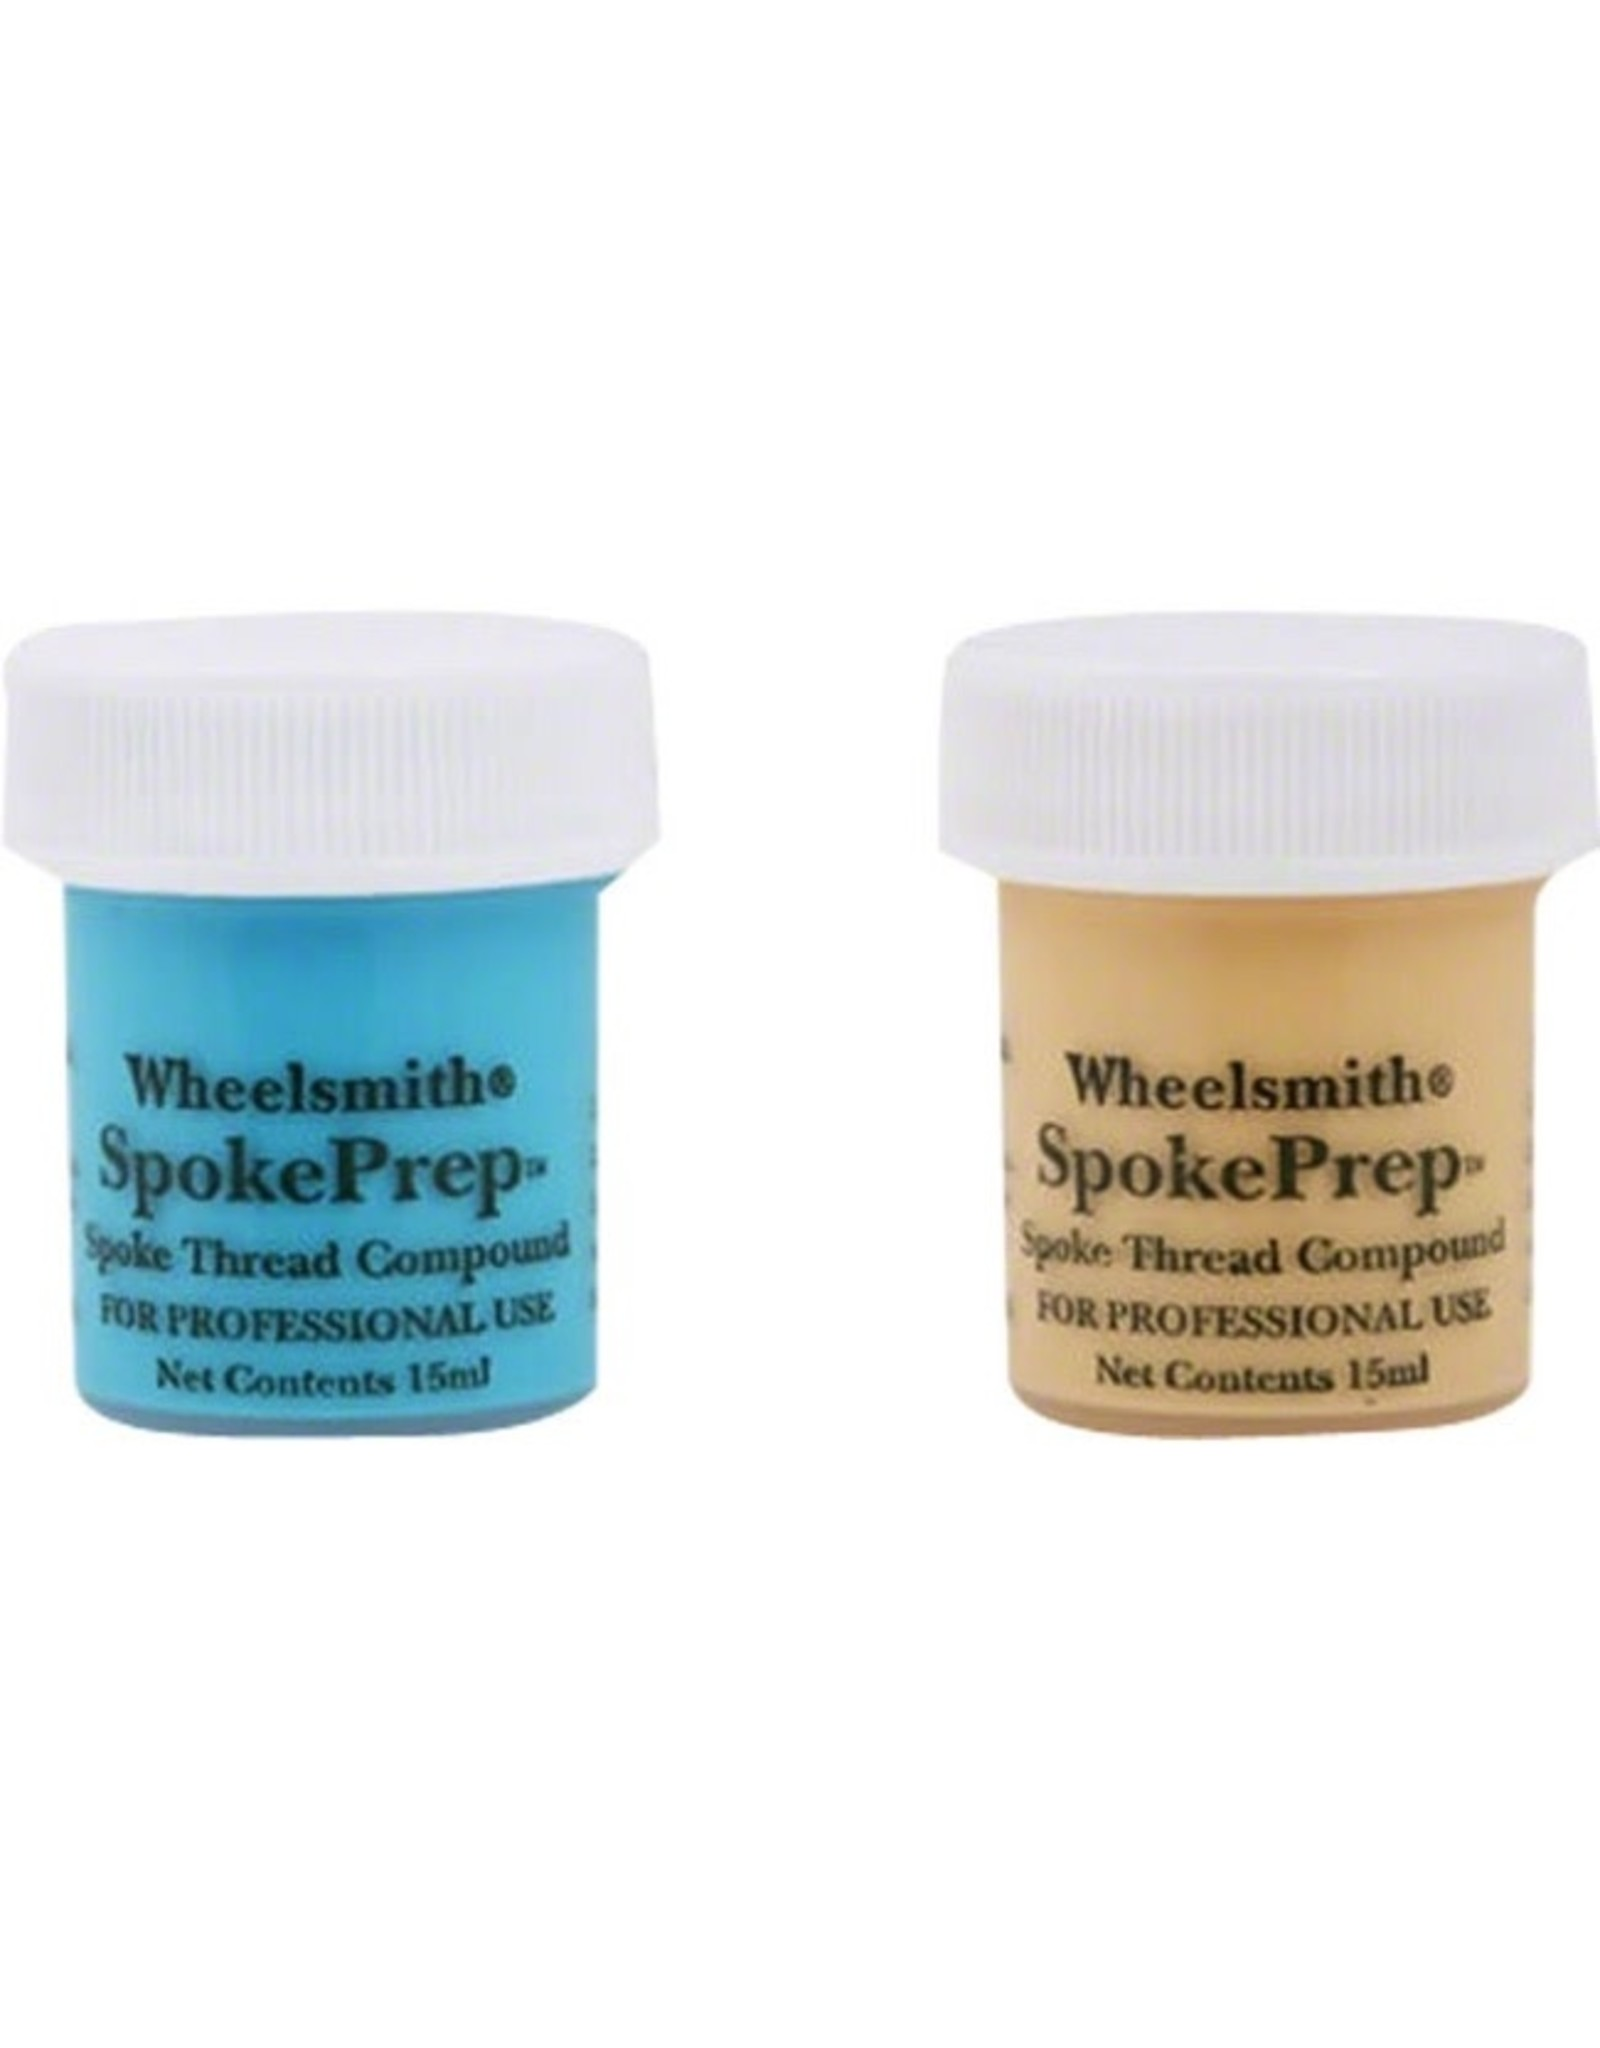 Wheelsmith Wheelsmith Double Spoke Prep, Two 15mI Bottles, One Each of Orange and Blue